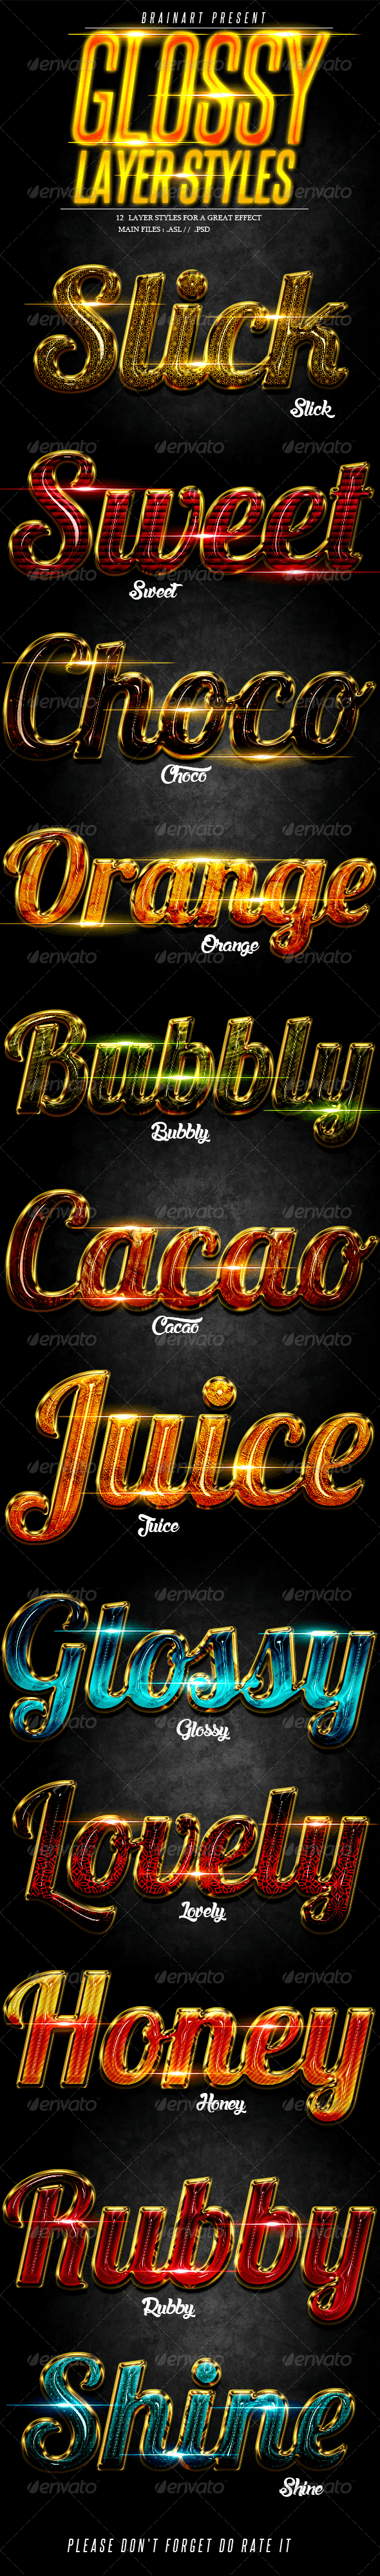 Glossy Layer Styles Vol.1 - Text Effects Styles